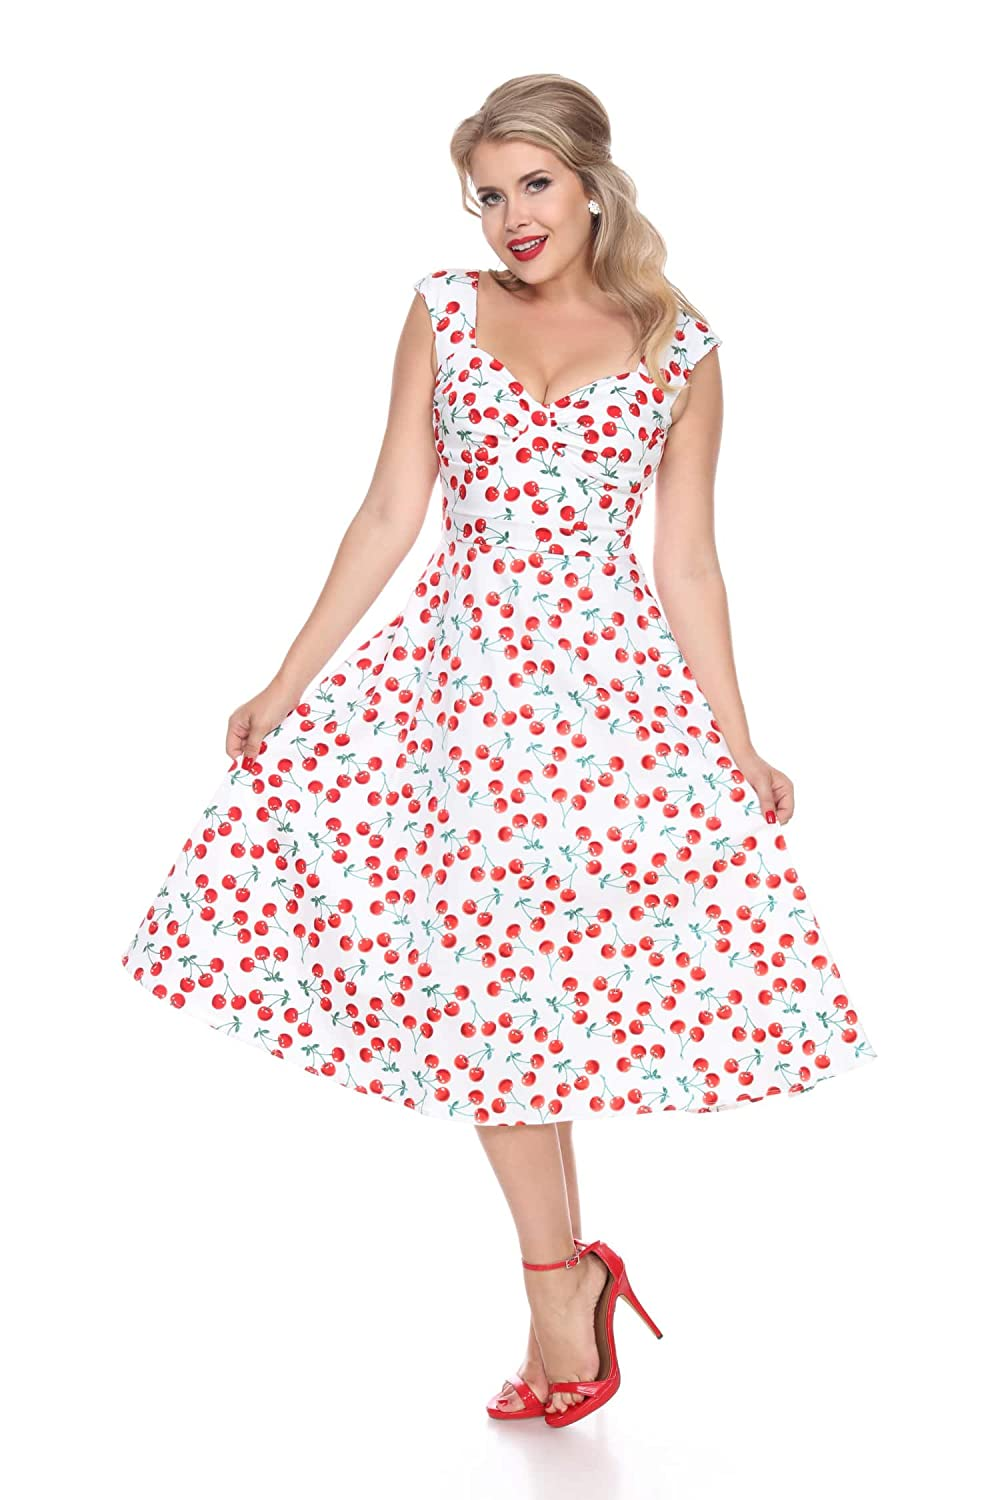 Rockabilly Dresses | Rockabilly Clothing | Viva Las Vegas Bettie Page Bettie on Holiday (Cherries) $118.00 AT vintagedancer.com